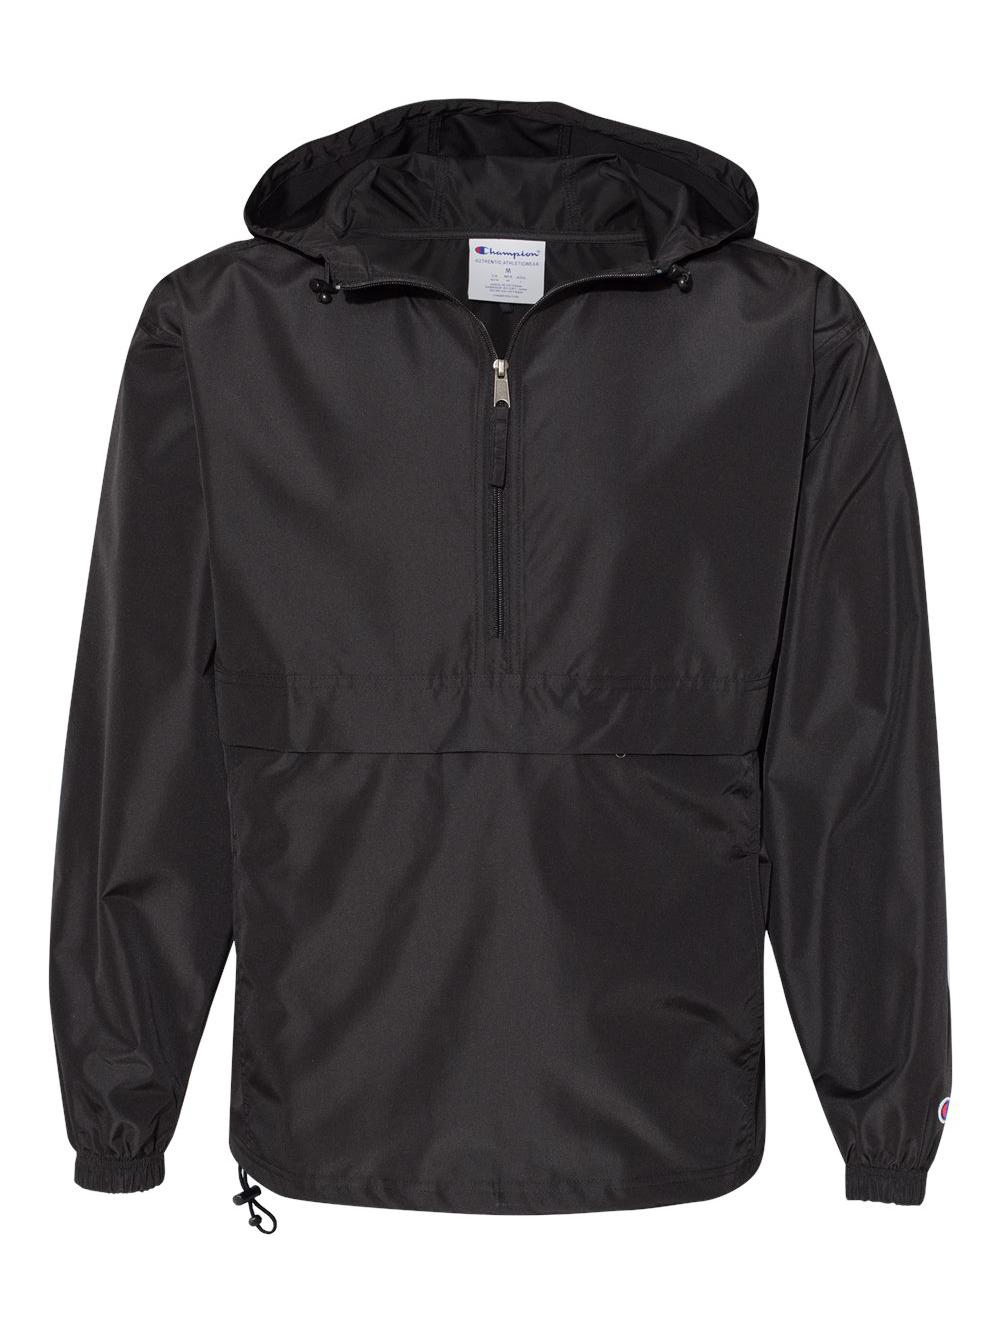 Co200 Co200 Jacket Champion Jacket Packable Champion Packable qxCUgS